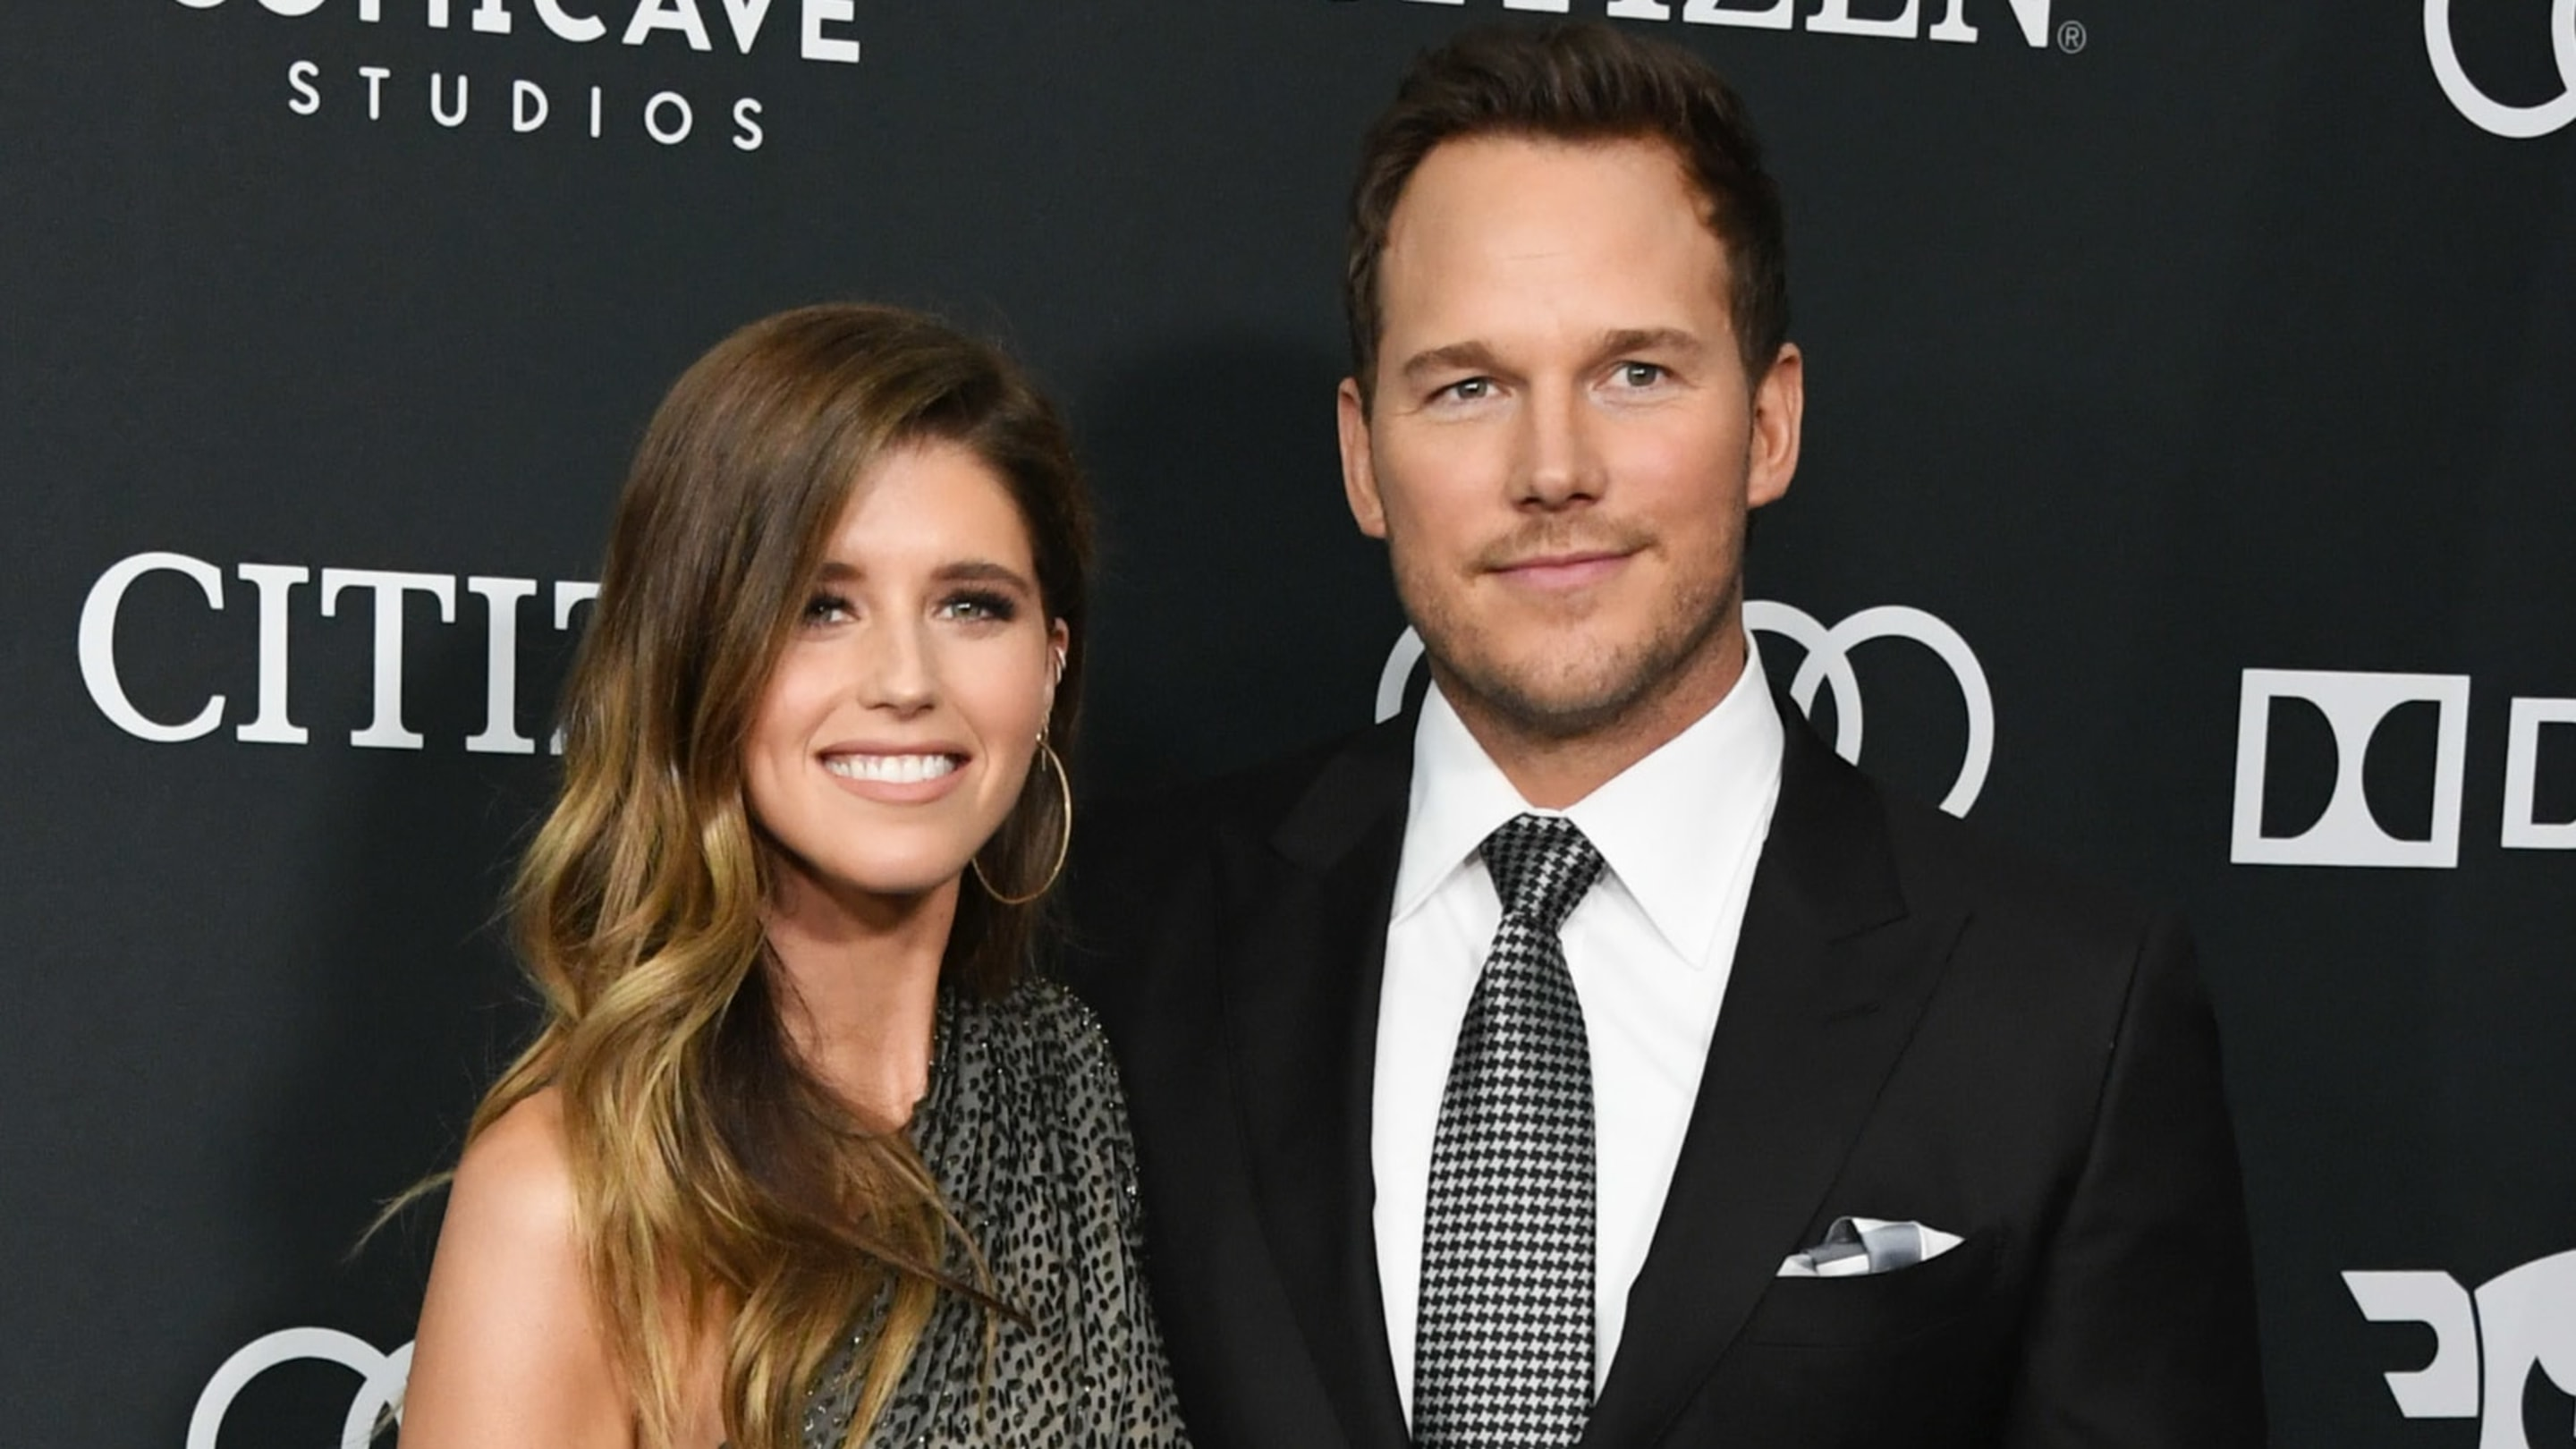 Chris Pratt and Katherine Schwarzenegger Welcome First Child Together